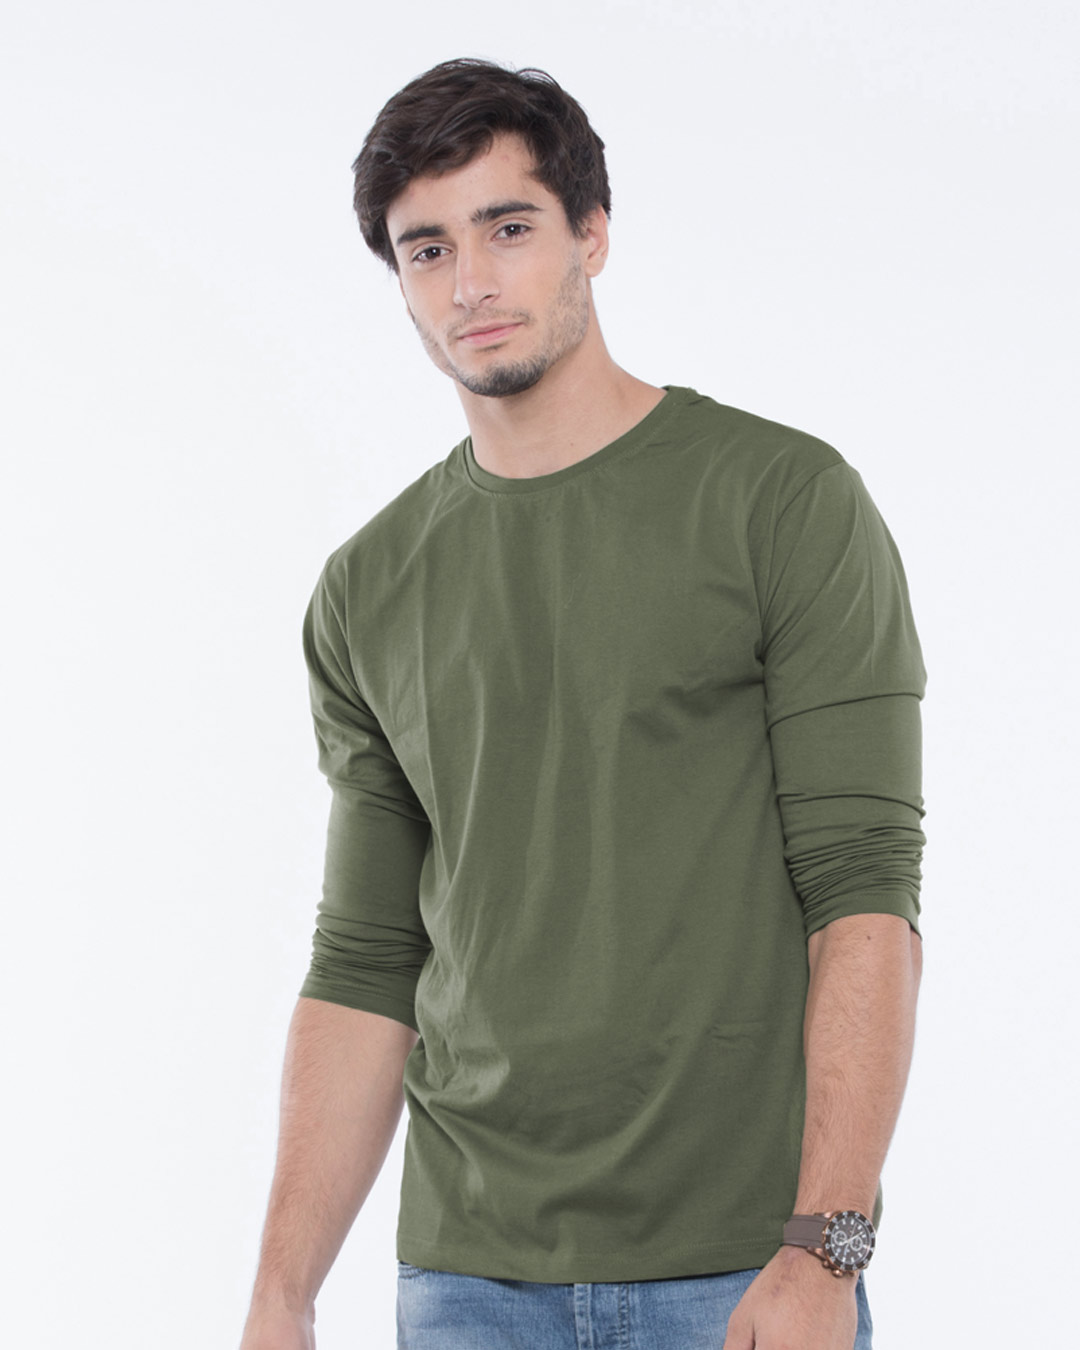 Buy Army Green Fullsleeve T Shirt Men 39 S Fullsleeve T Shirt